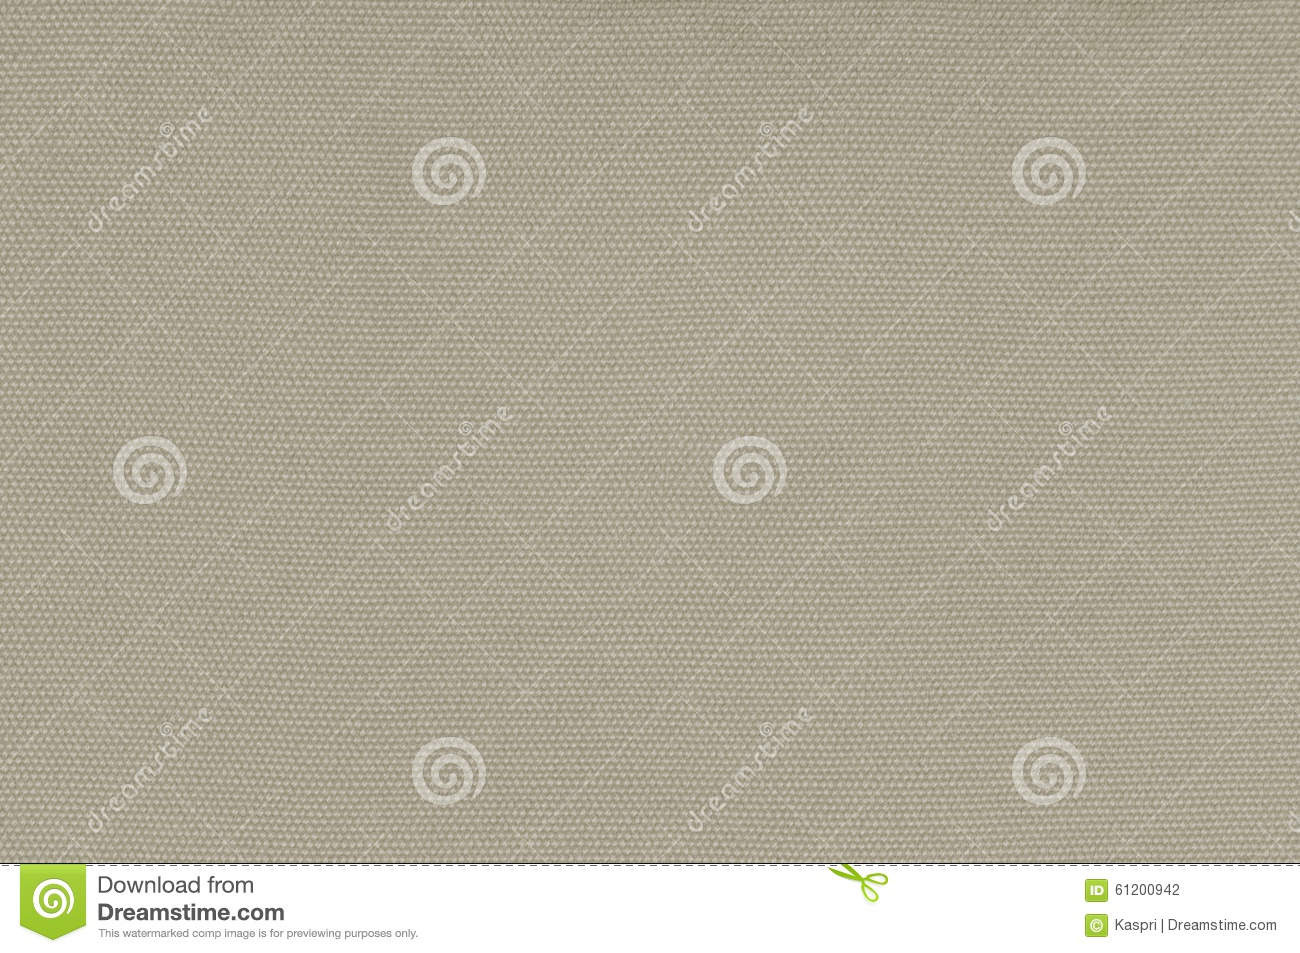 Textured striped cotton fabric swatch royalty free stock for Space pattern fabric